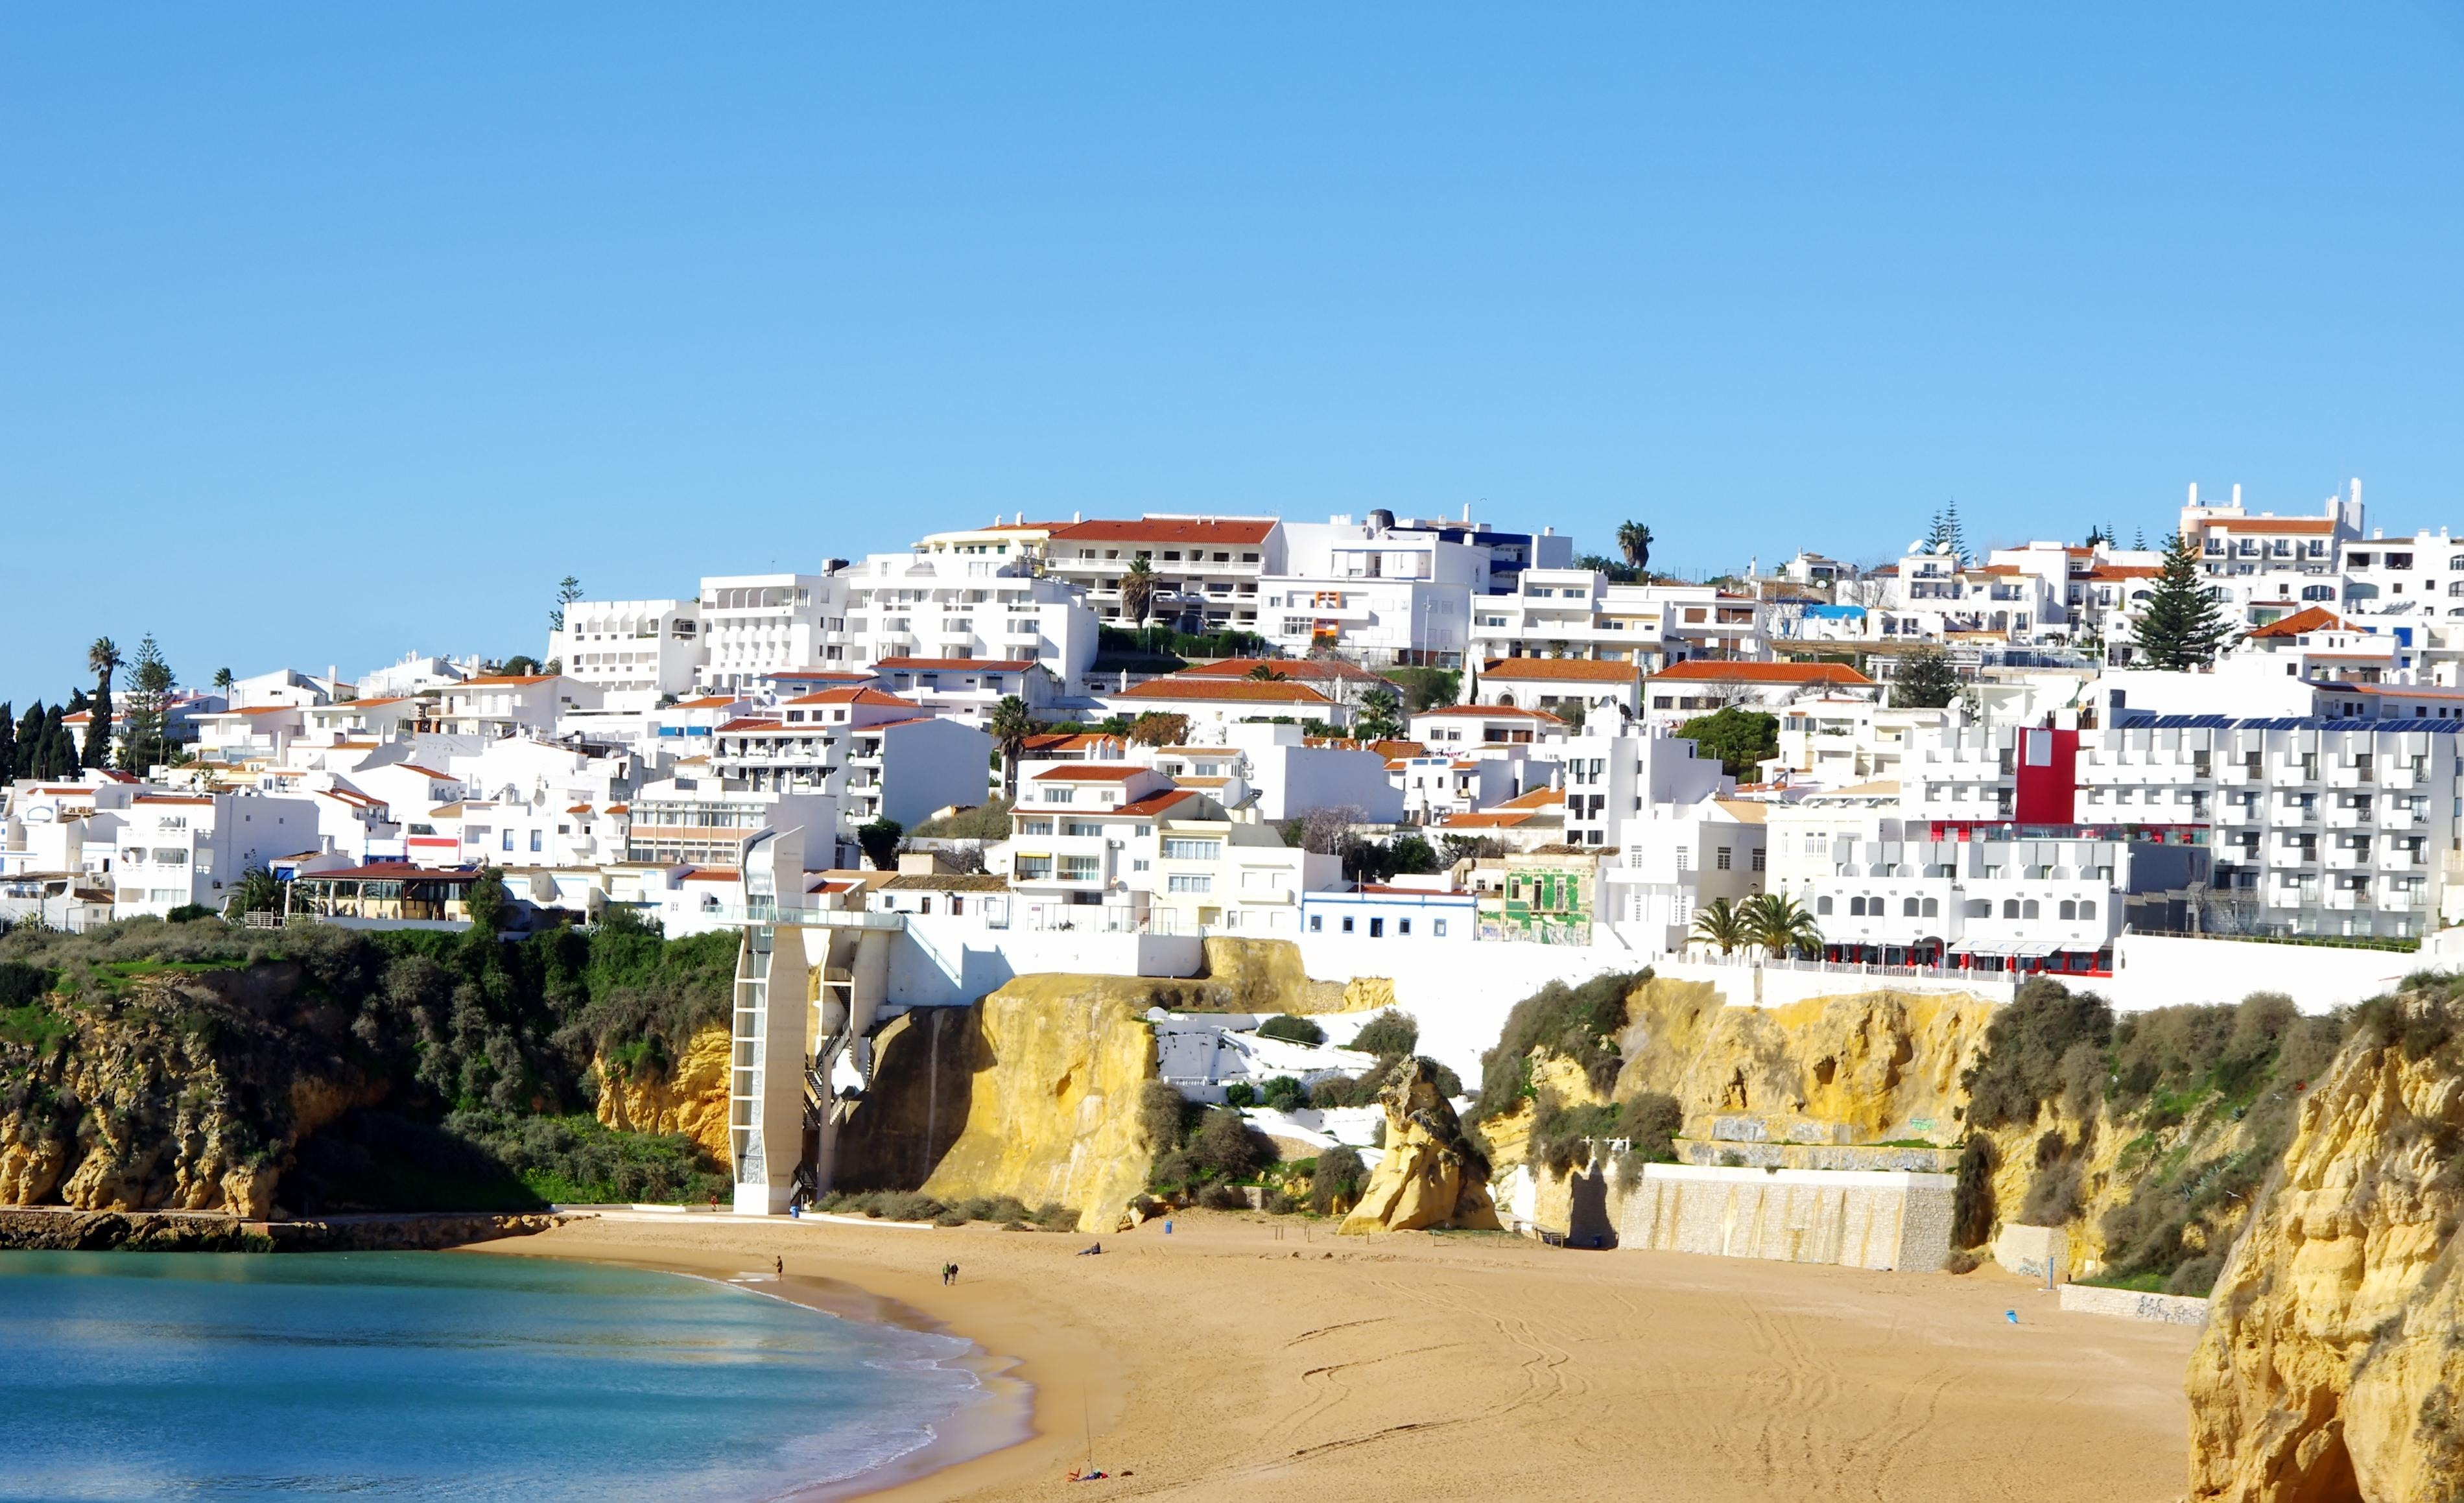 How to Spend 1 Day in Albufeira